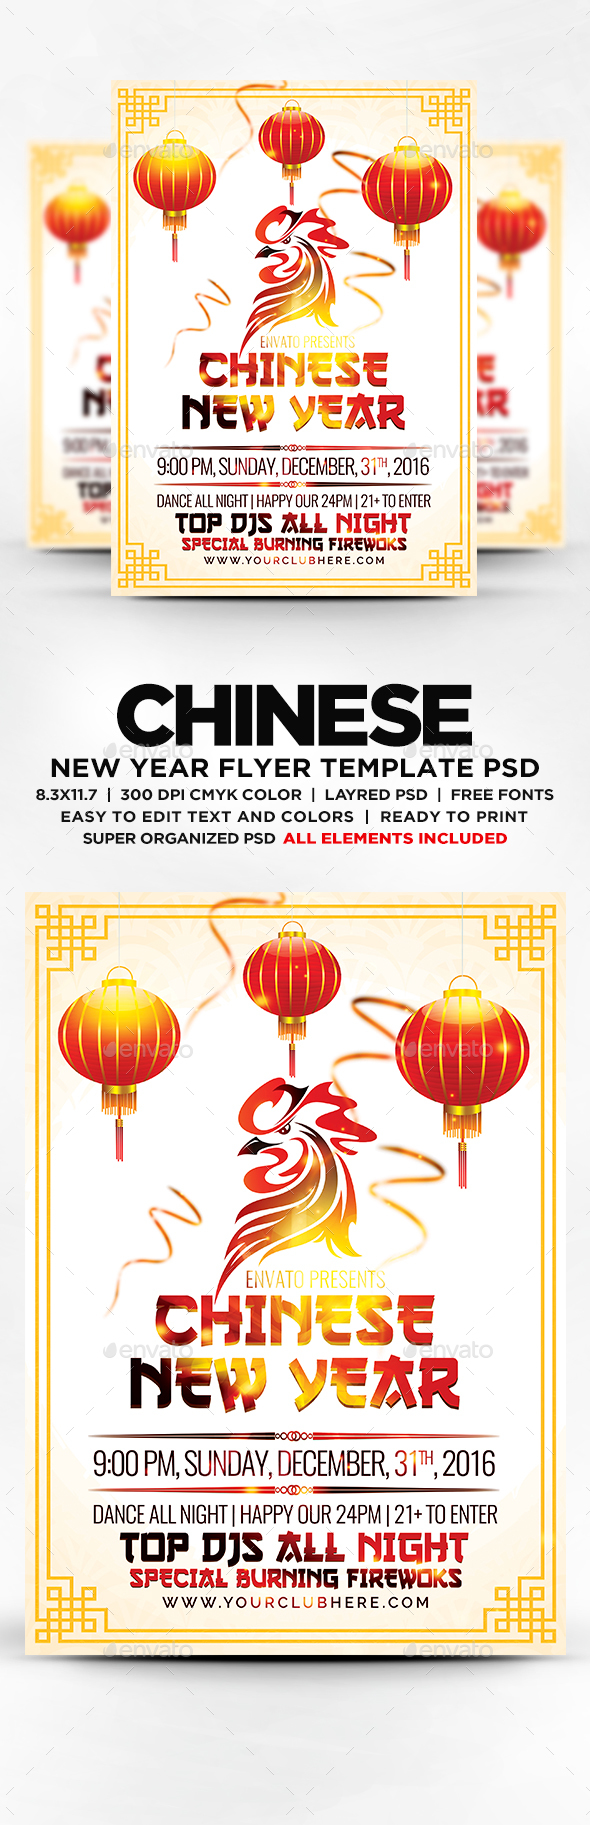 chinese new year flyer 2017 template psd